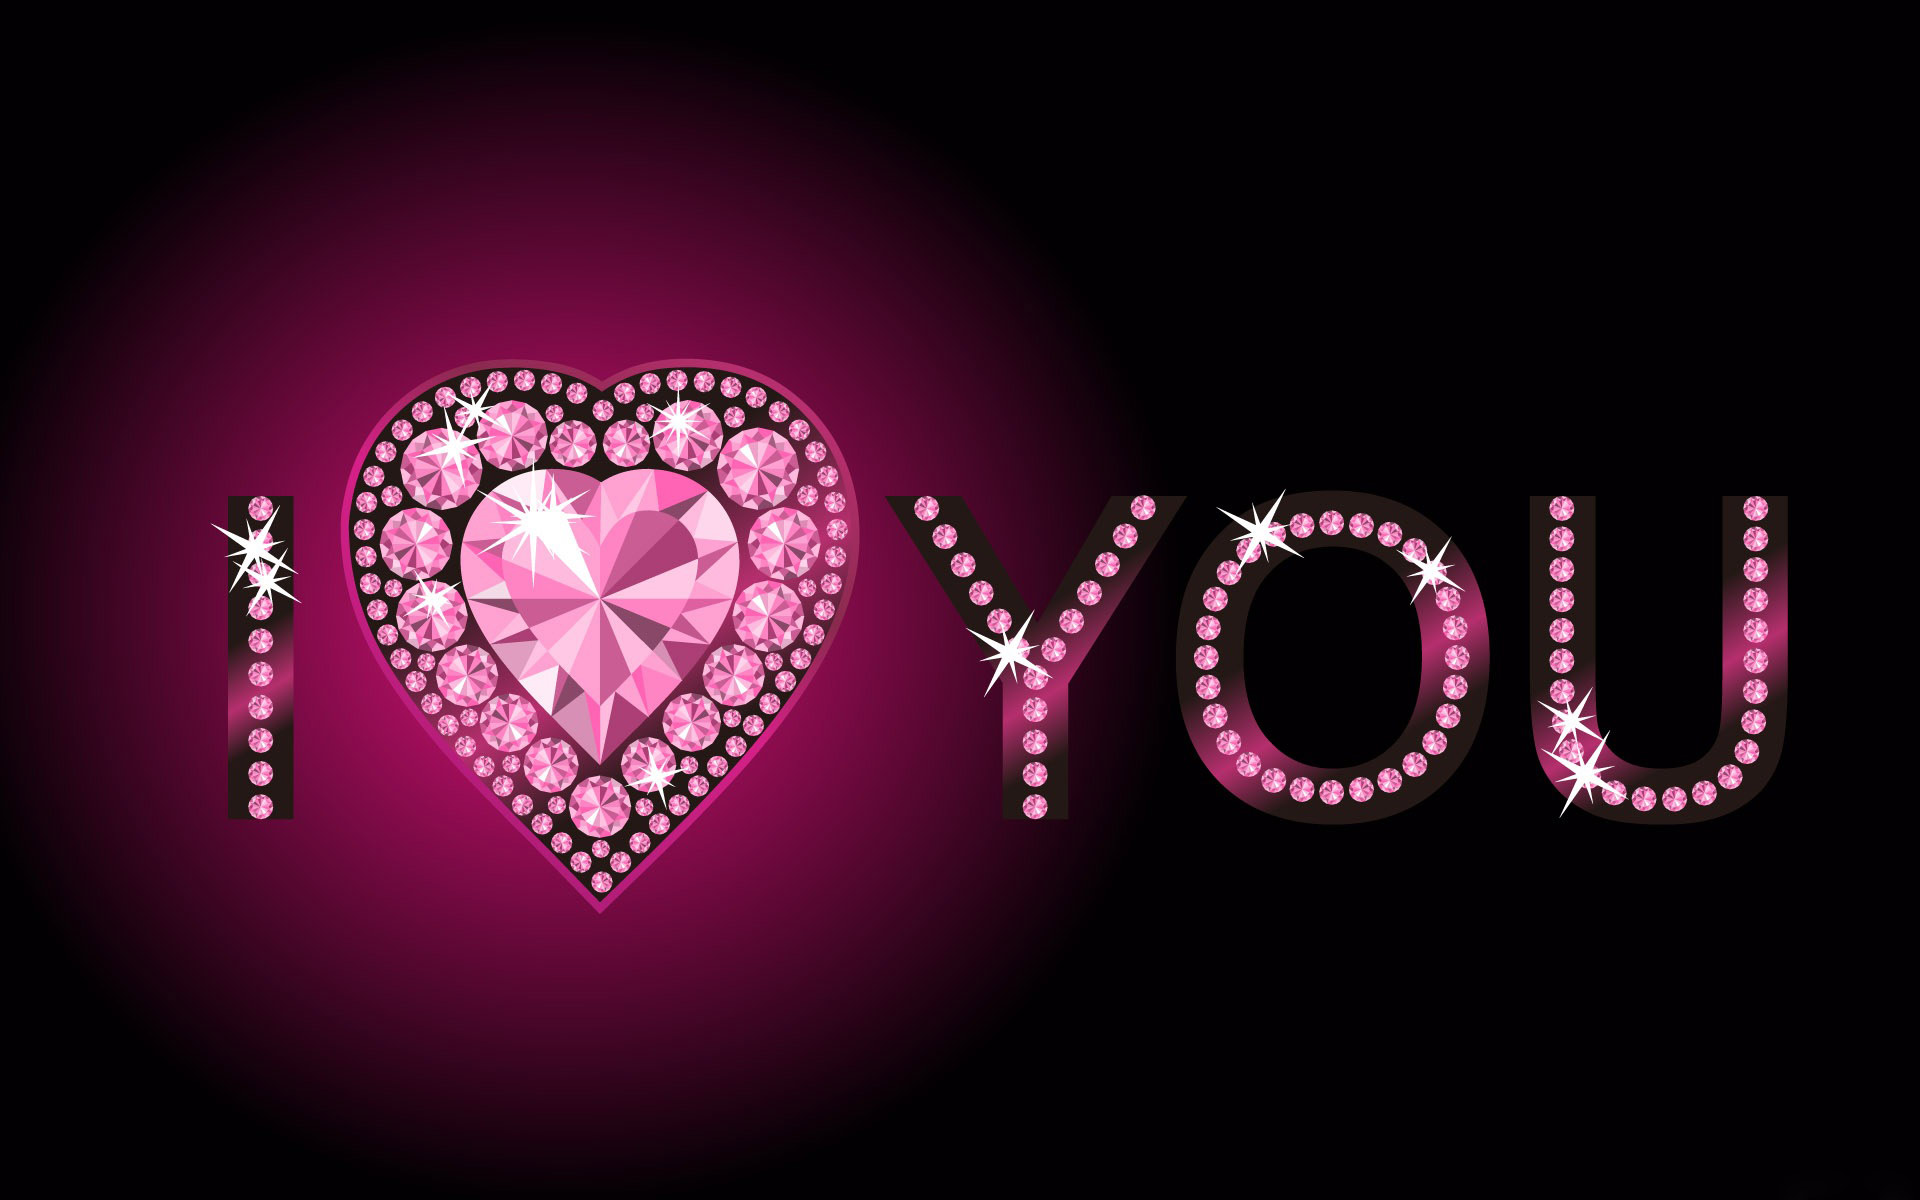 Wallpaper Love You : I Love You Wallpapers, Pictures, Images